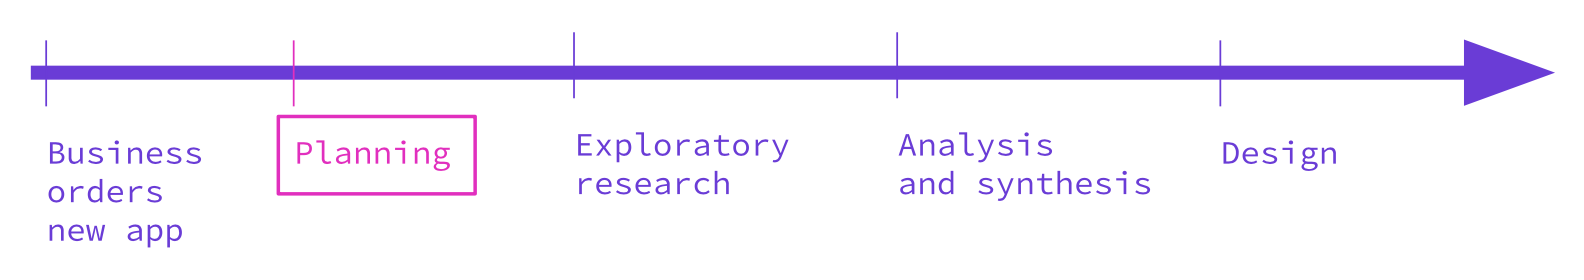 How to Convince Business to UX Research - Prototypr